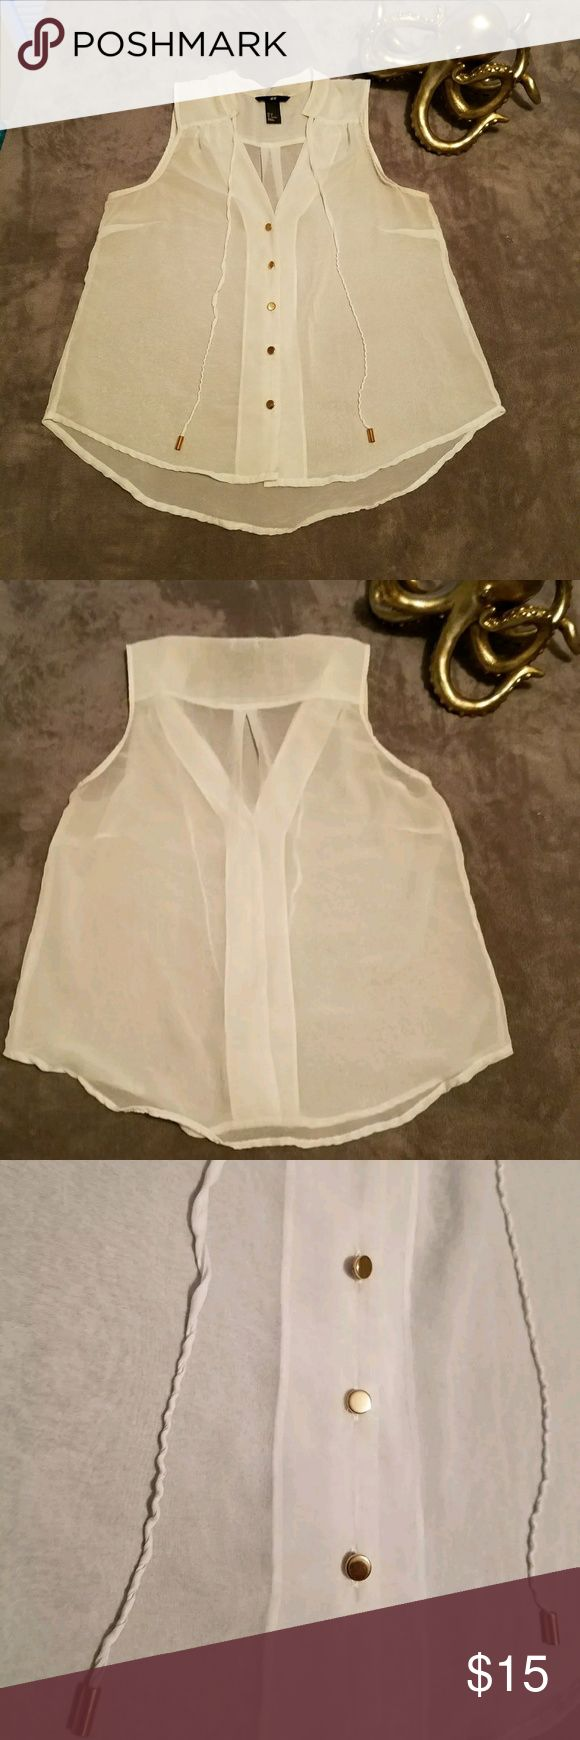 H&M White Sheer V Neck Gold Button Down Shirt Sz 8 H&M White Sheer V Neckline Gold Button Down Shirt Sz 8  White Sheer See-through Top. Sleeveless Tank Top.  V Neckline and Gold Button Down & Ties in the Front Blouse.   Great for Date Night, Girls Night, Work or Casual Social Events.  Measurements: Armpit to Armpit - 11 Inches (Double for Full Width) Bottom Width - 21 Inches (Double for Full Width) Length - 23 Inches  100% Polyester  Worn a Couple Times.  Great Condition. H&M Tops Button…